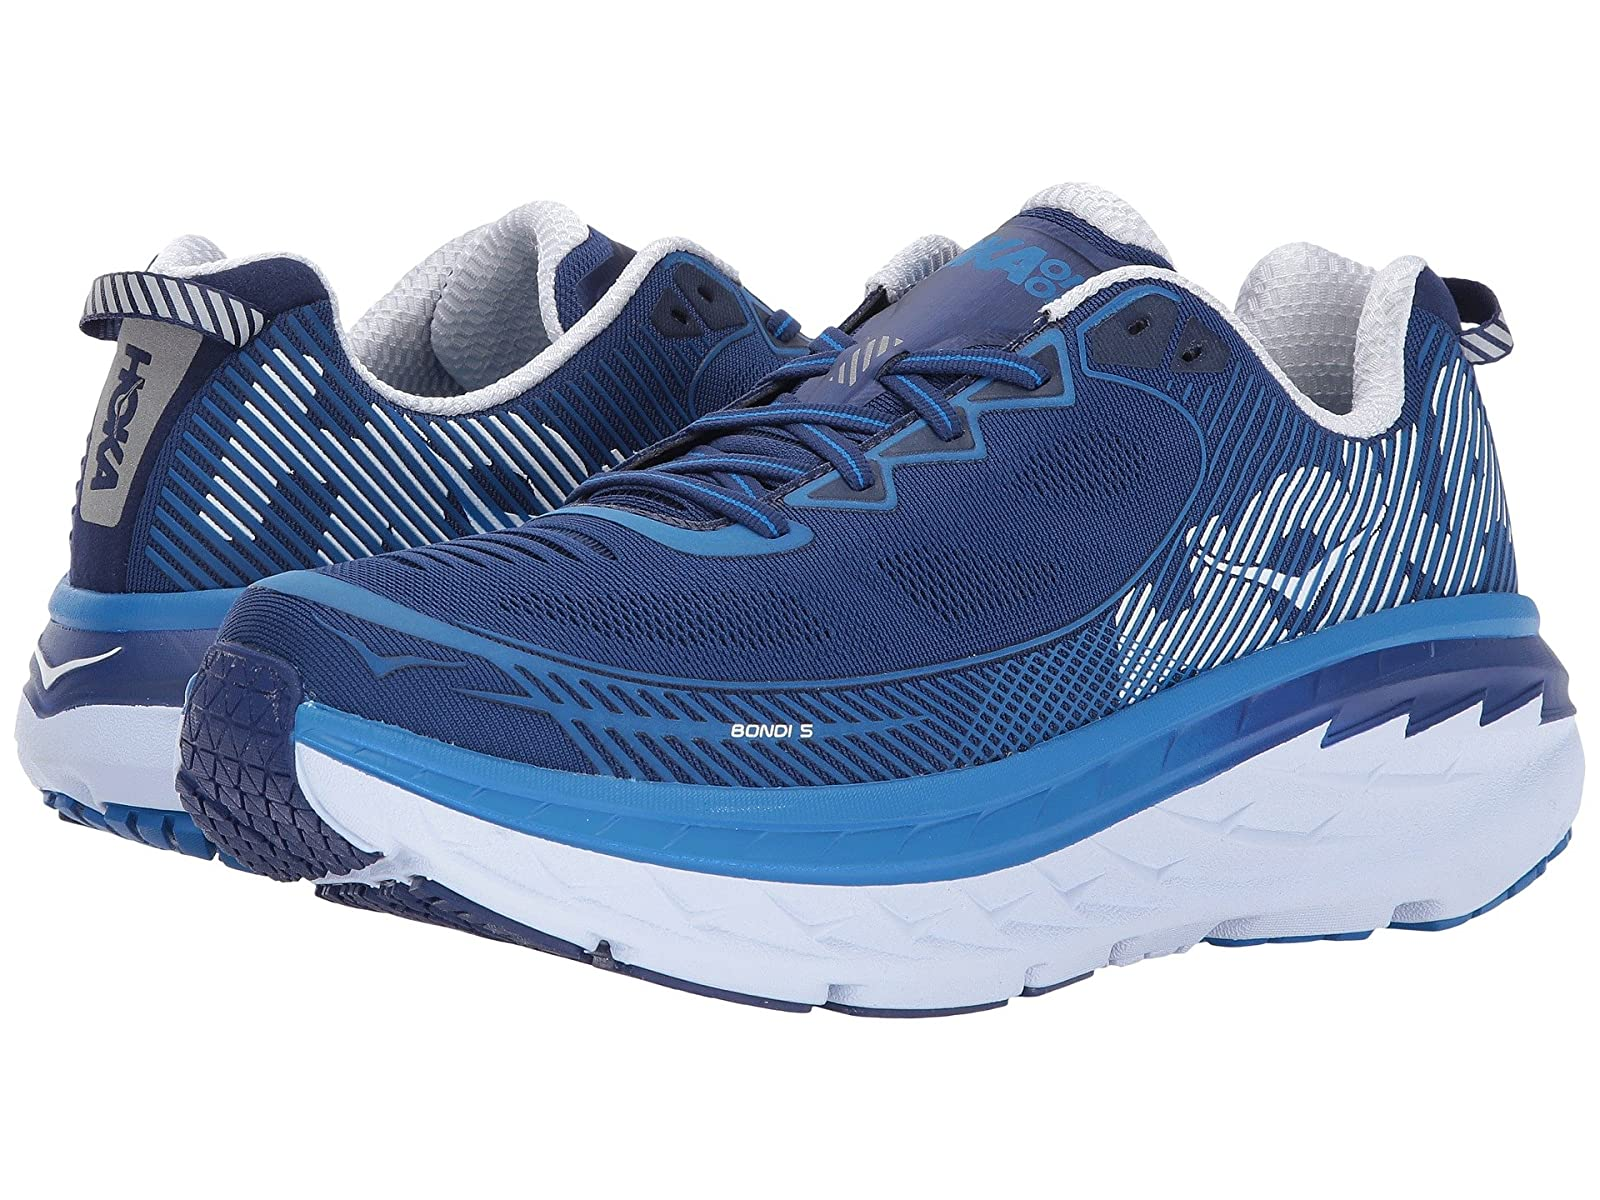 Hoka One One Bondi 5Atmospheric grades have affordable shoes